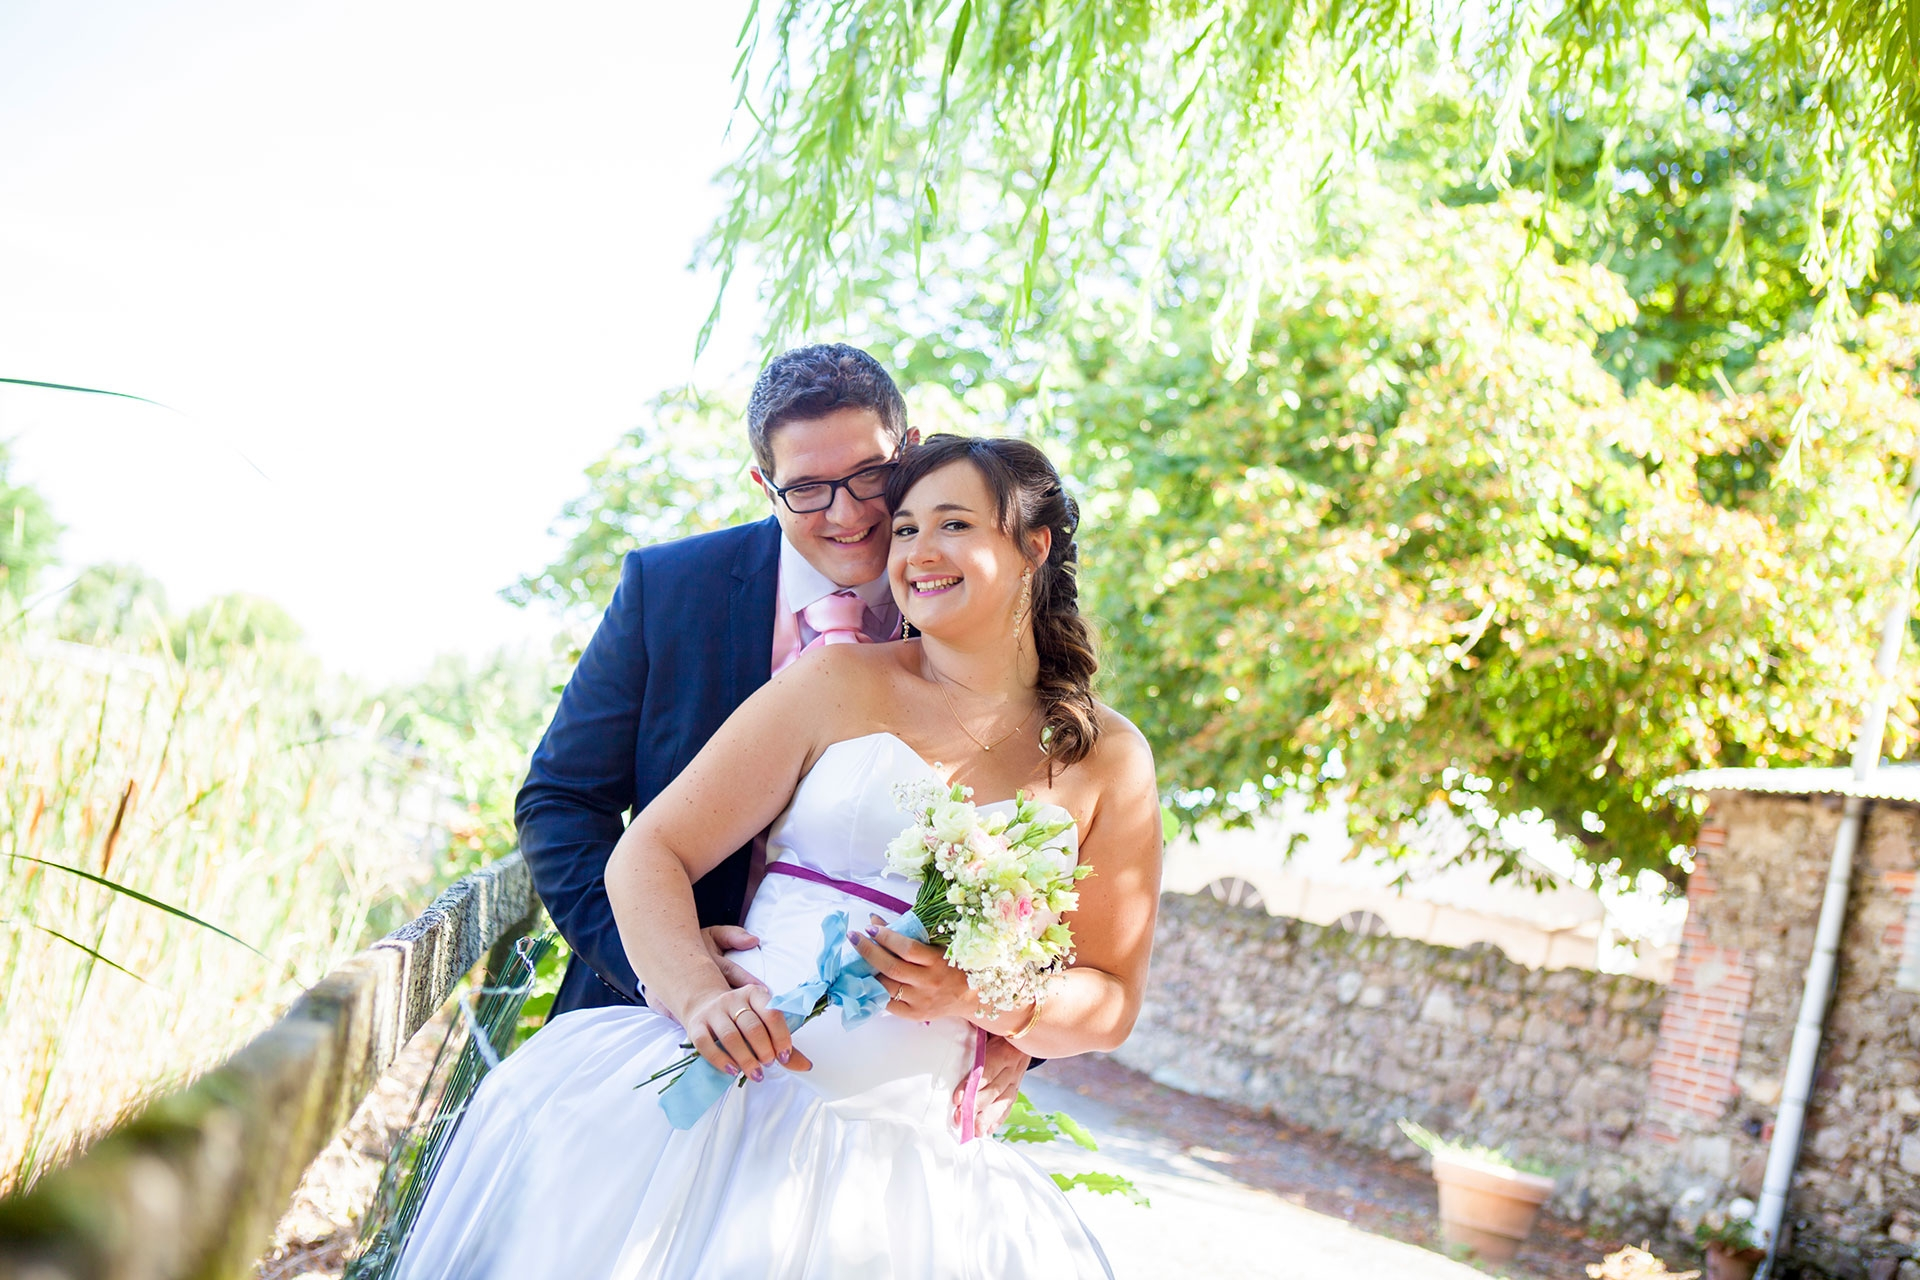 particuliers-evenements-mariages-oui-france&philippe-31